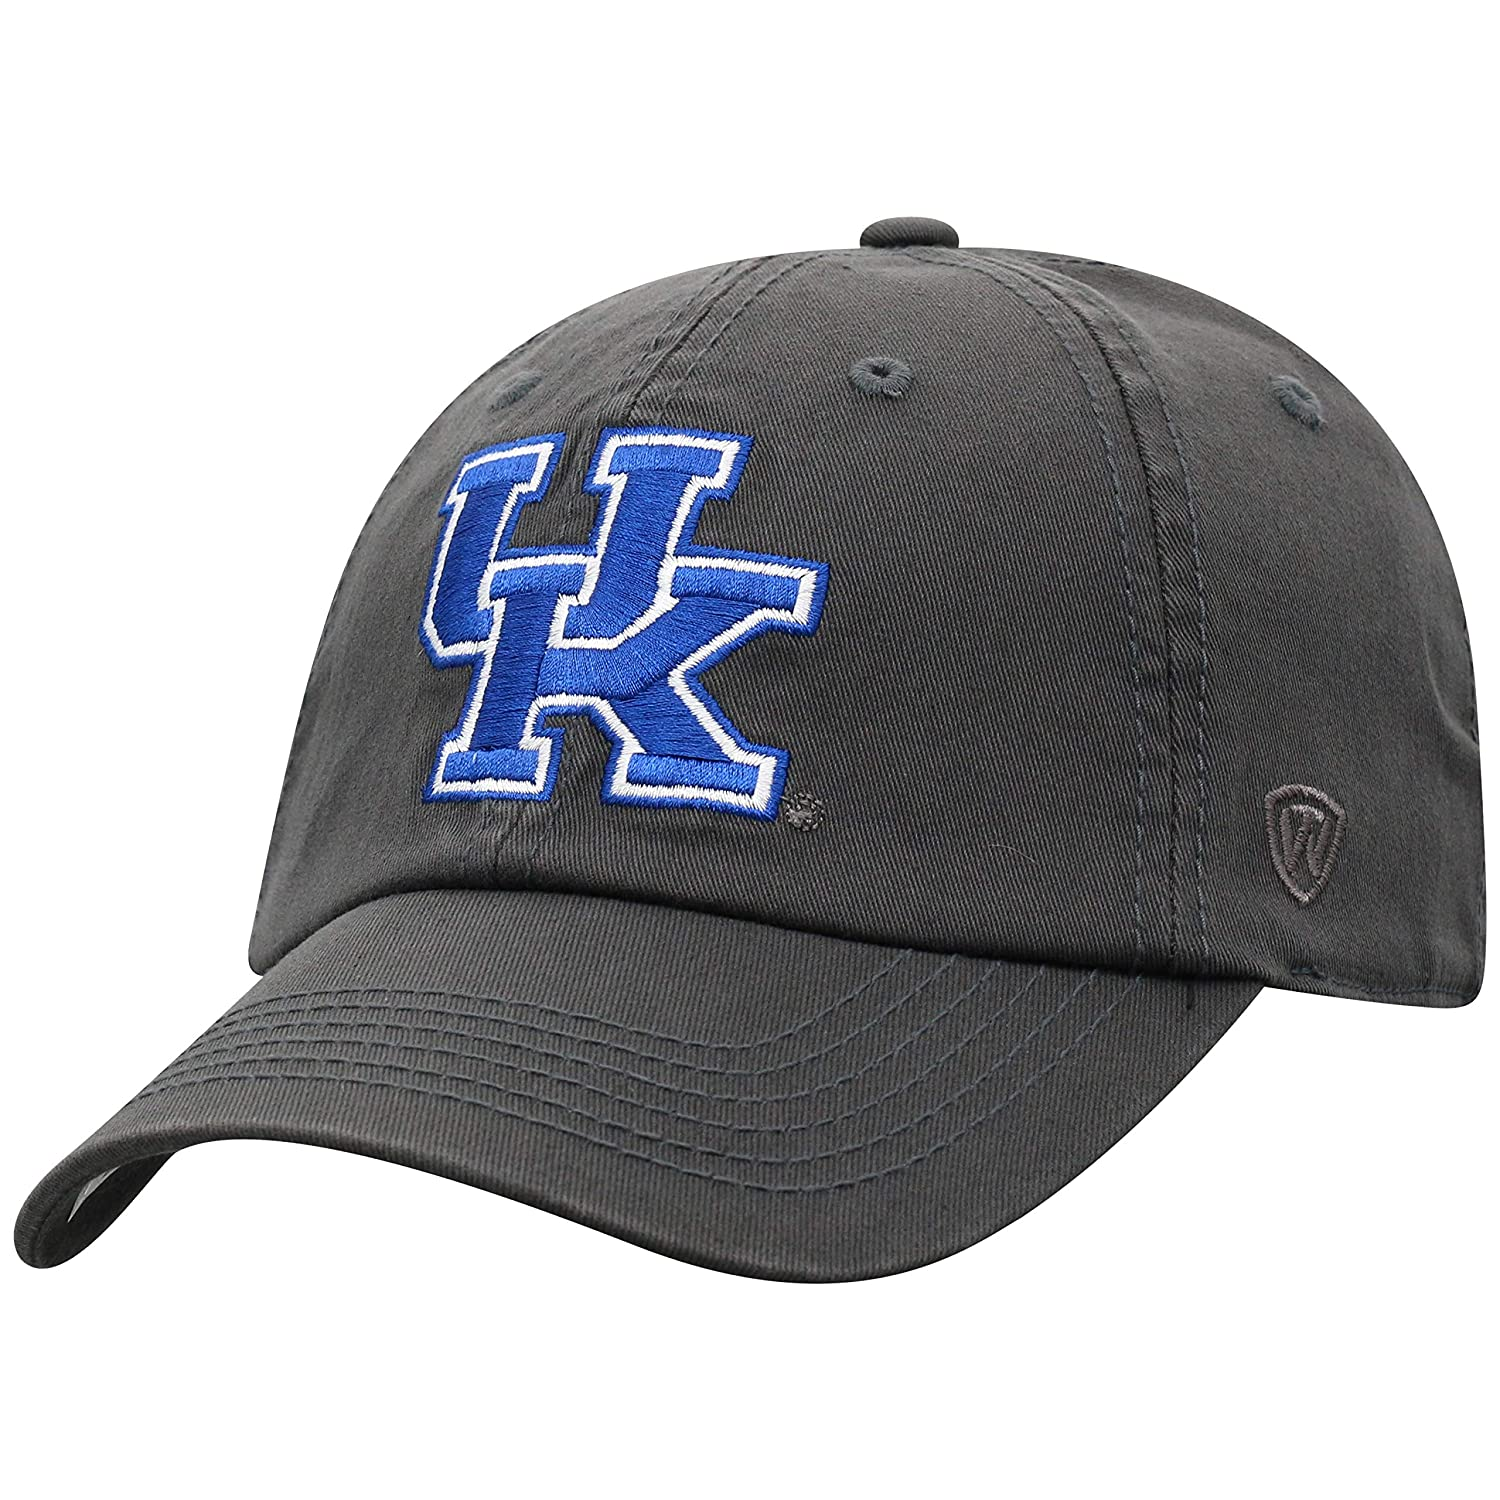 Amazon.com   Top of the World NCAA Kentucky Wildcats Men s Fitted Relaxed  Fit Charcoal Icon Hat b0aed5005ed